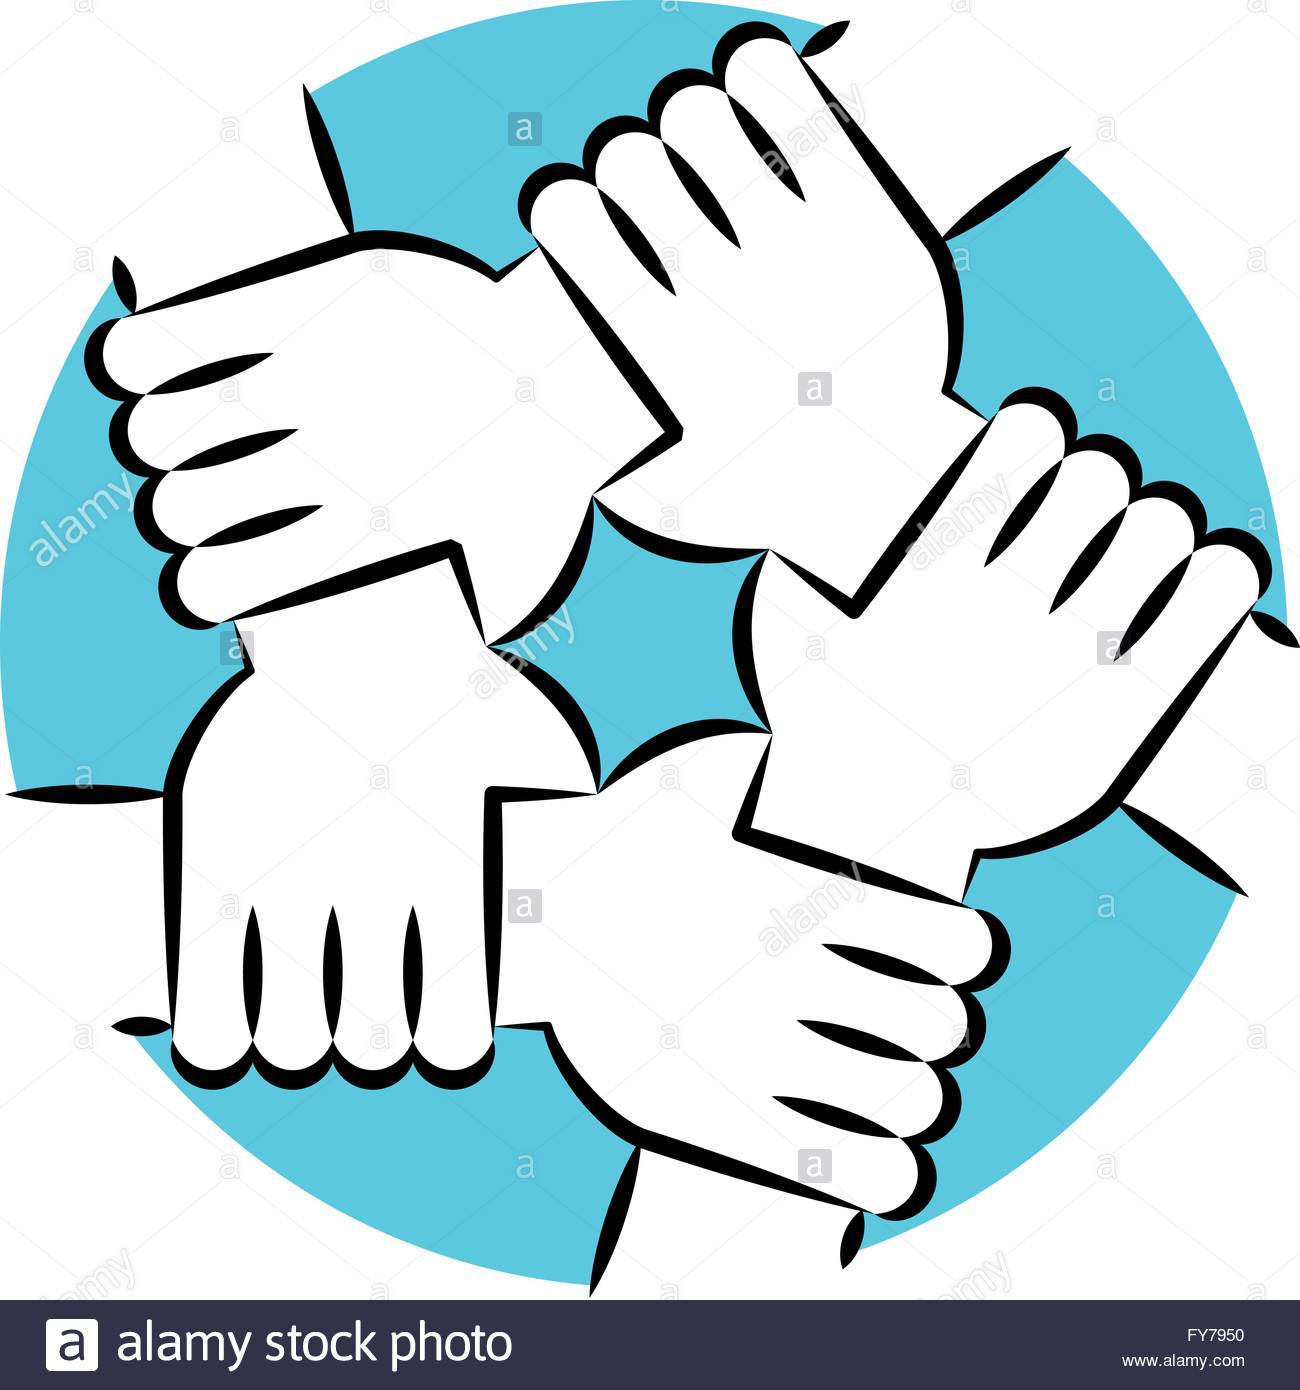 Vector Drawing Lines Unity : Solidarity circle line art blue five hands holding each